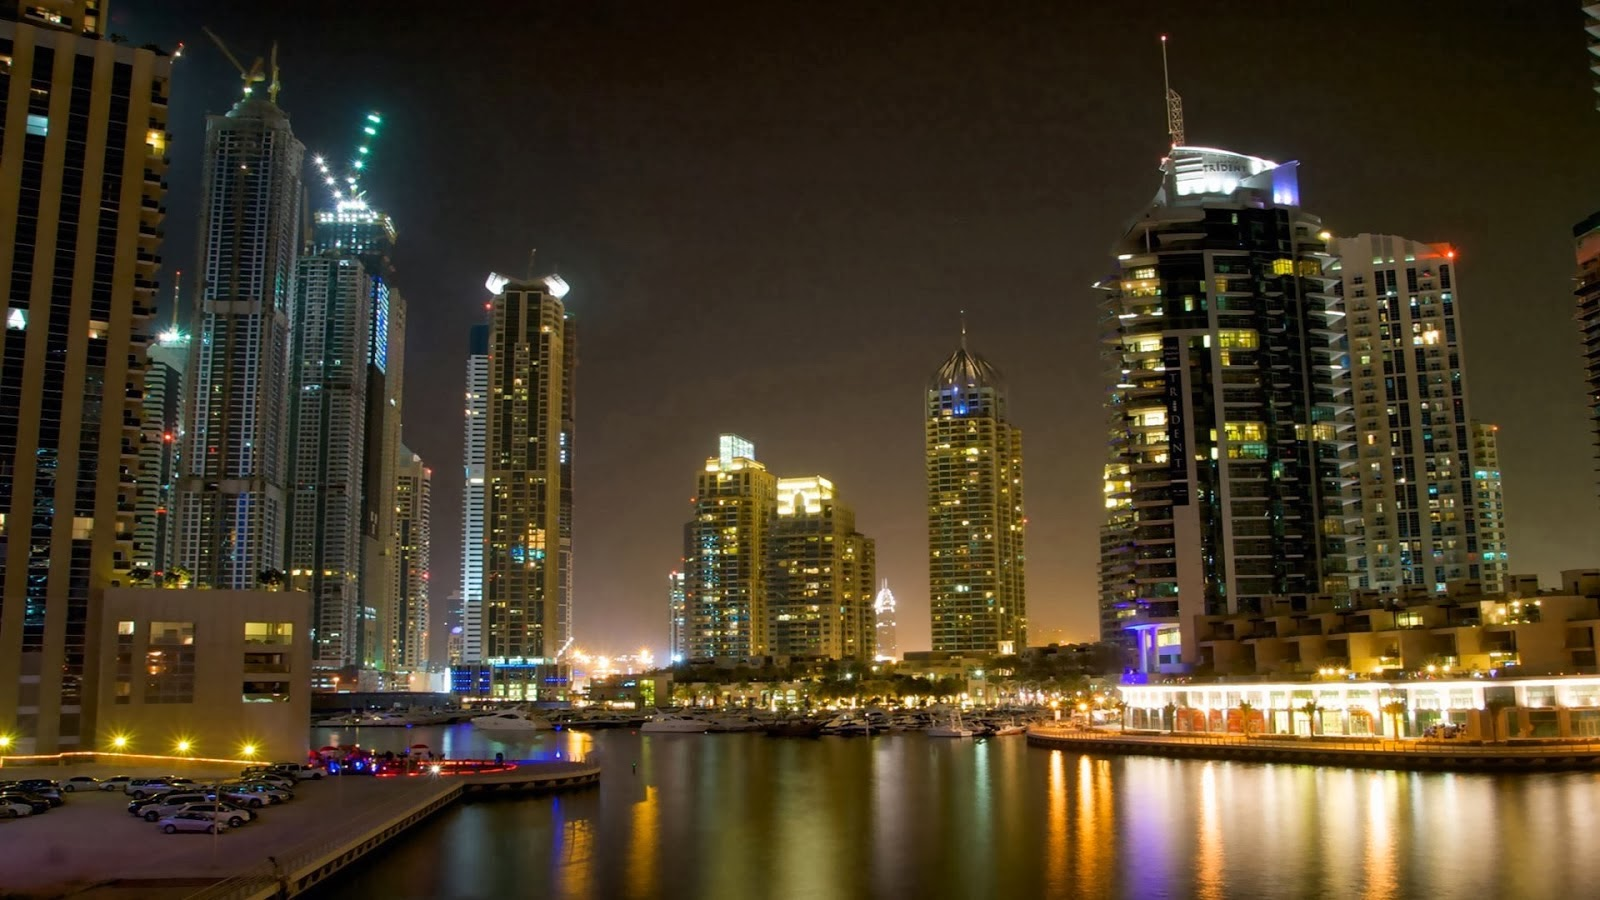 dubai city hd wallpapers 1080p dubai city hd wallpapers 1080p 1600x900